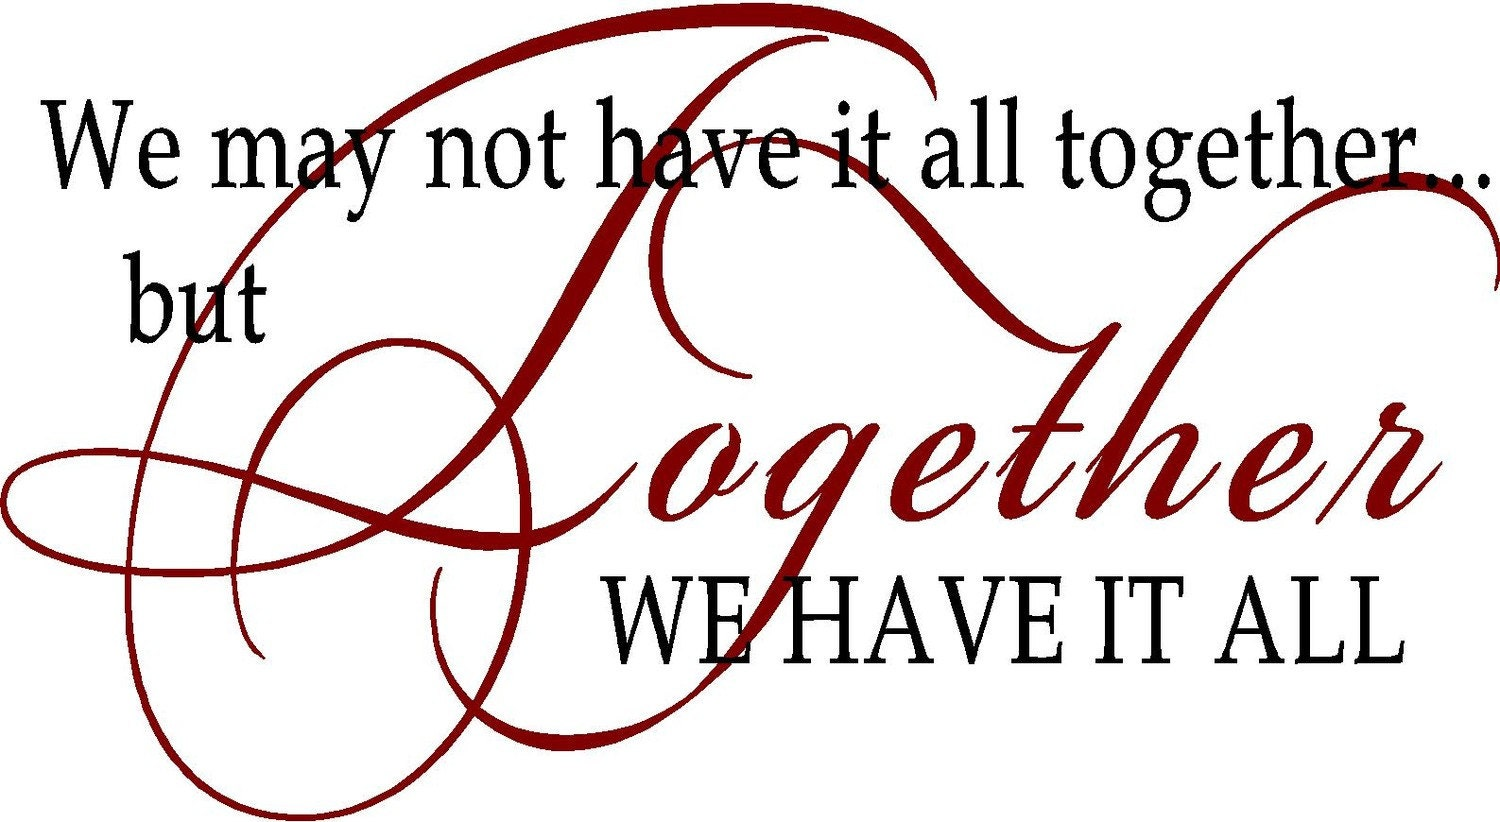 Togetherness Quotes And Sayings: Quotes About Togetherness. QuotesGram